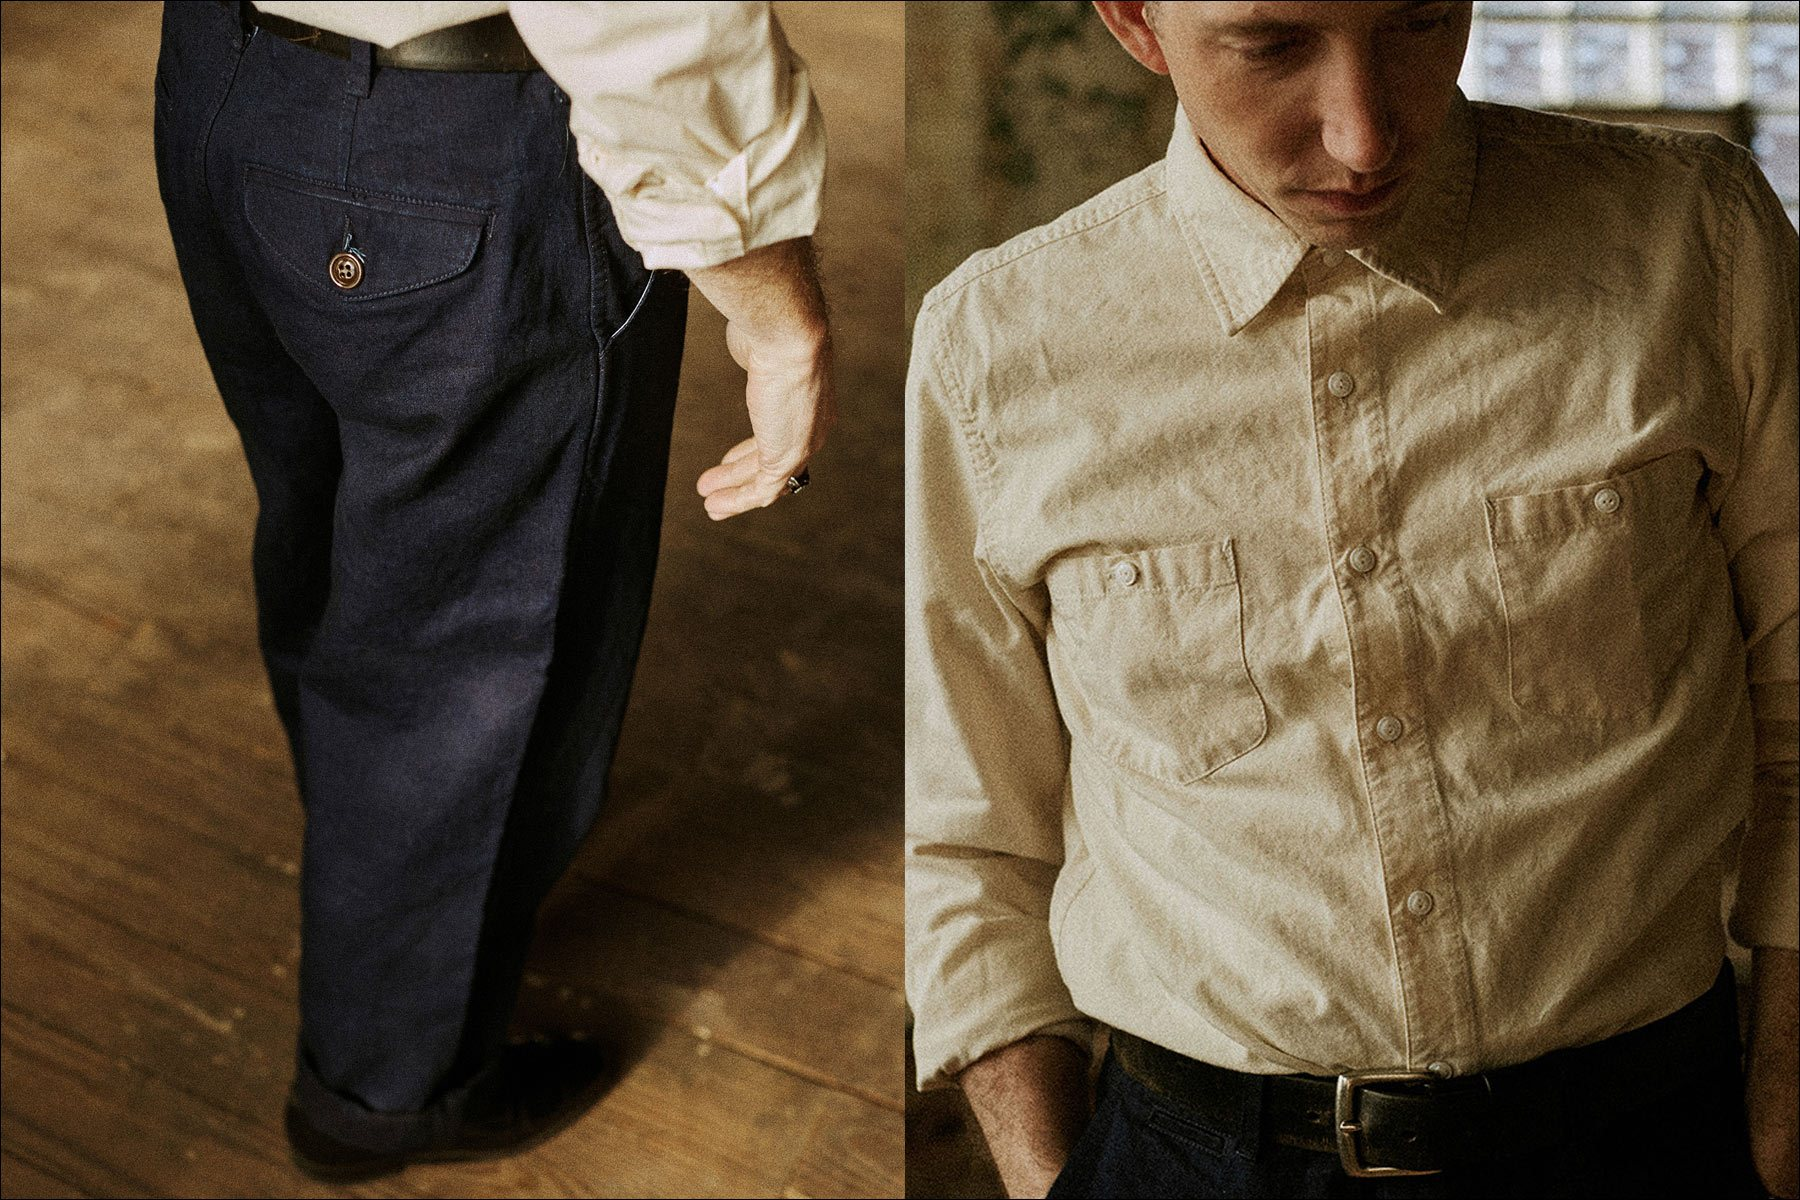 Pokey LaFarge by Noah Sahady for his clothing collaboration with Knickerbocker Mfg. Co. Ponyboy magazine NY.